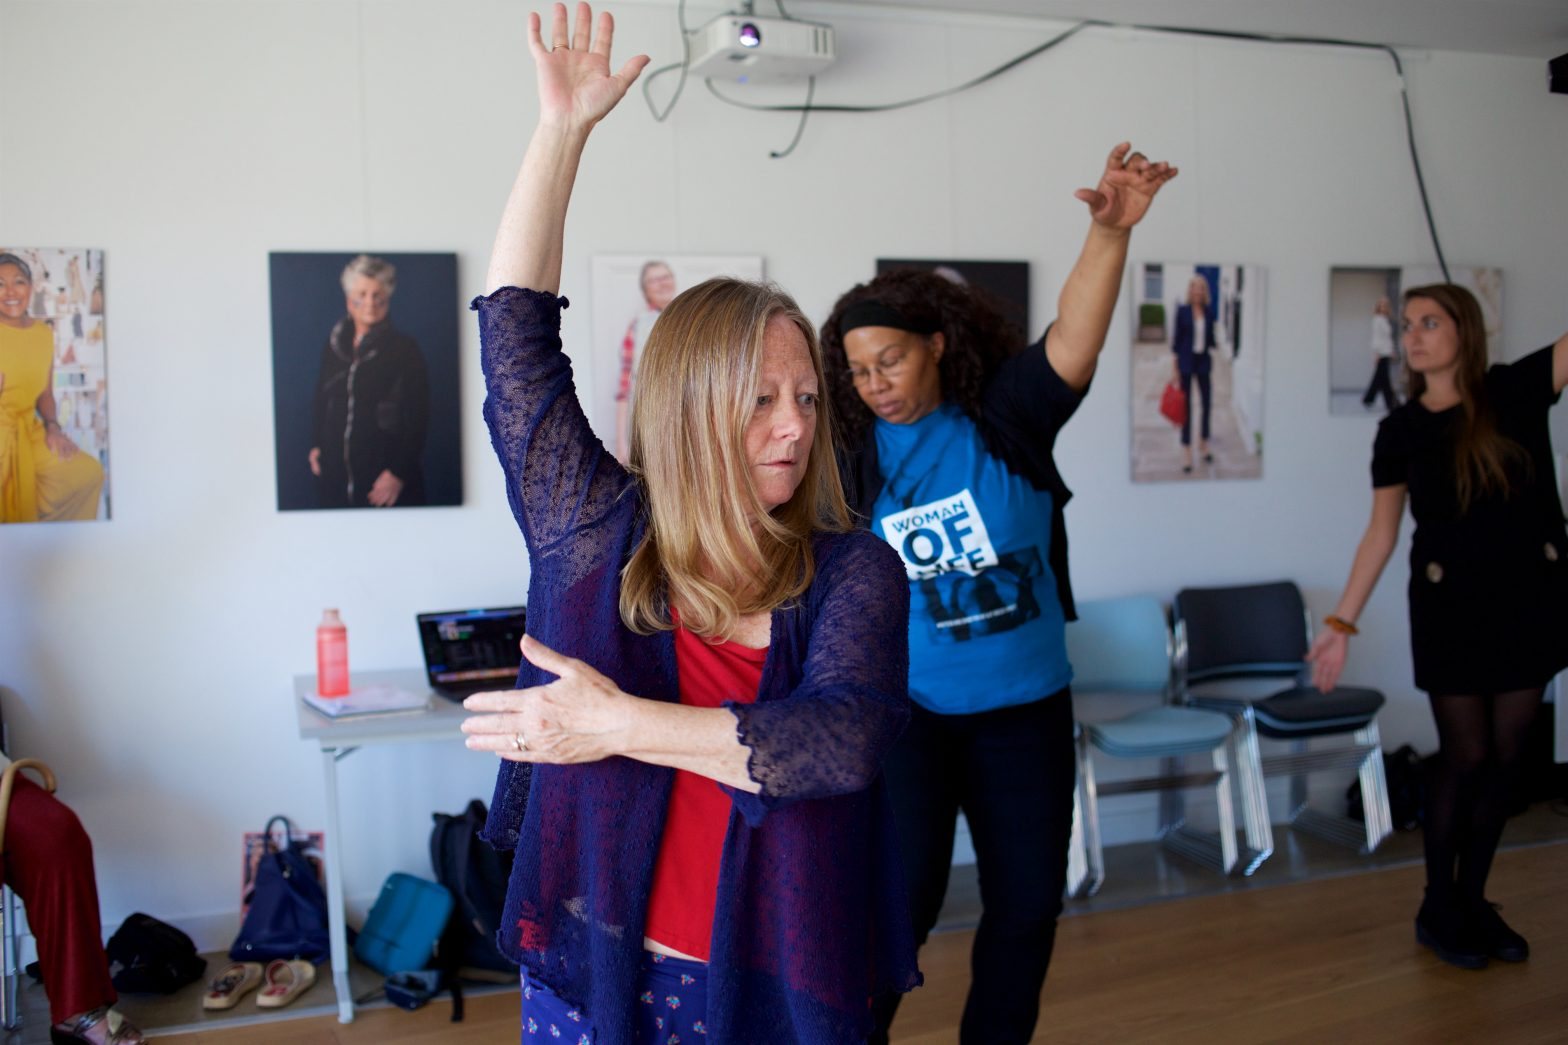 Two women are dancing with their arm raised in the air. Both are wearing blue.